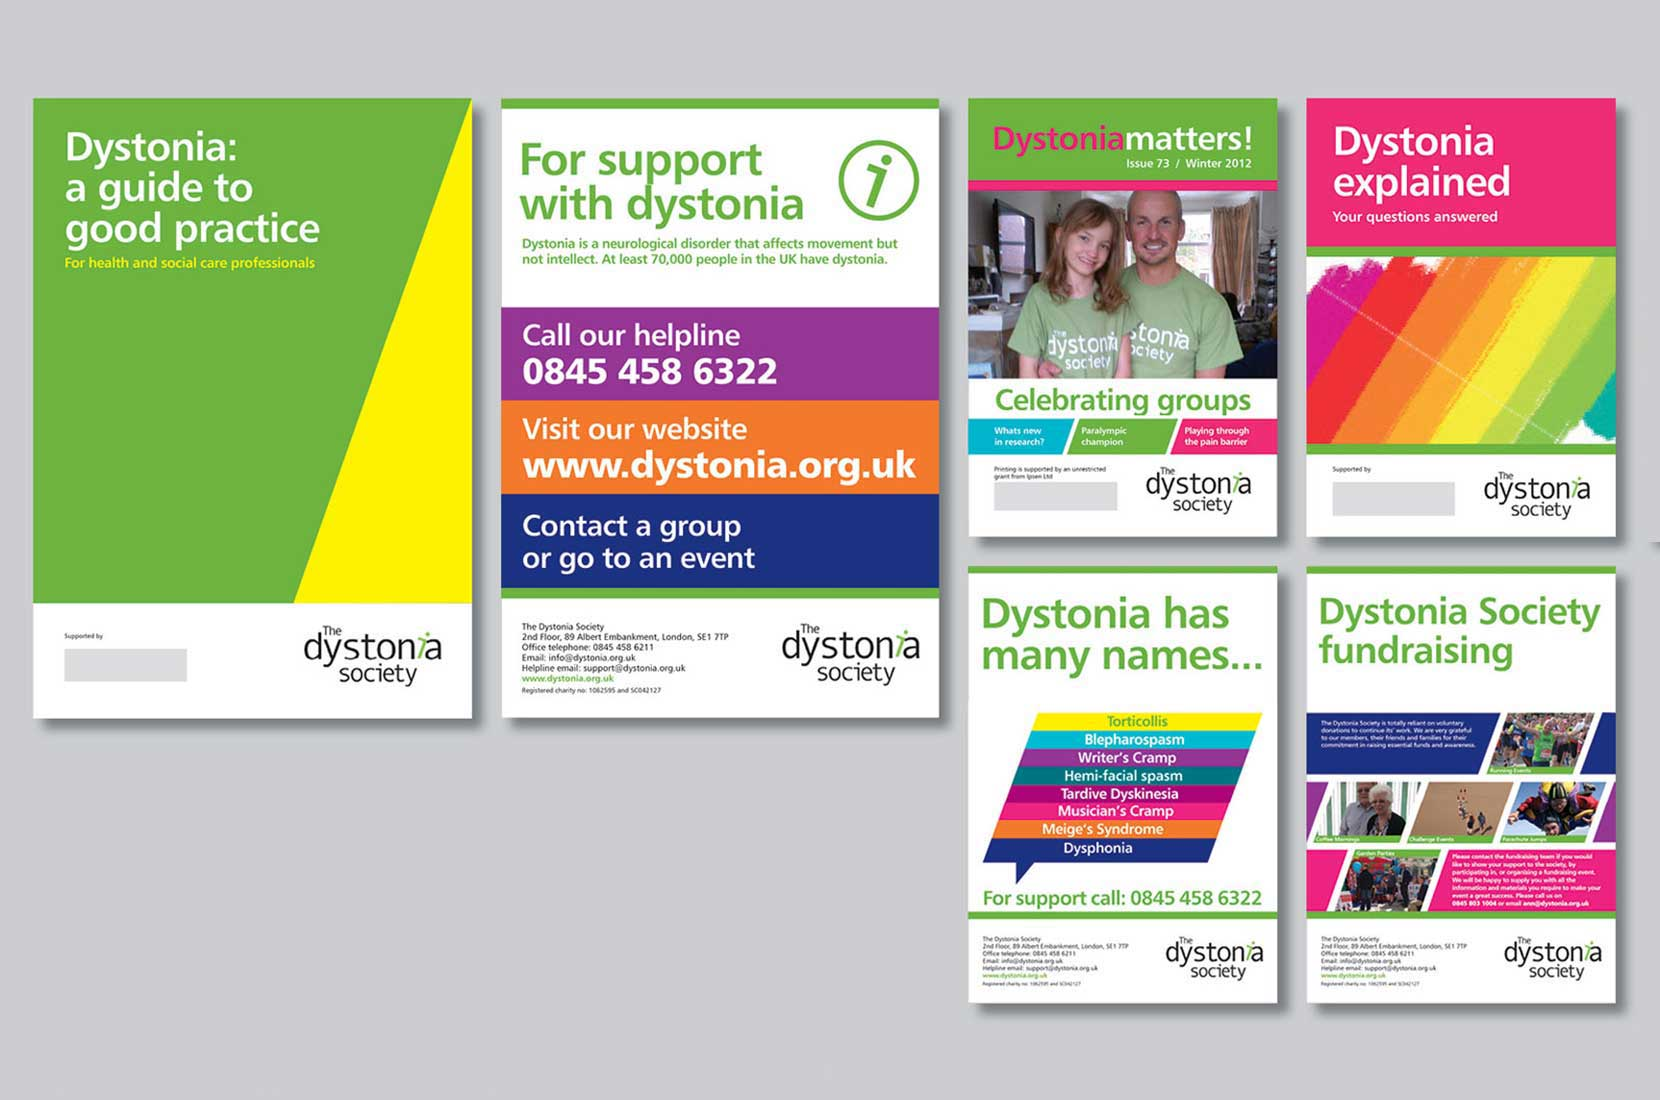 The Dystonia Society materials